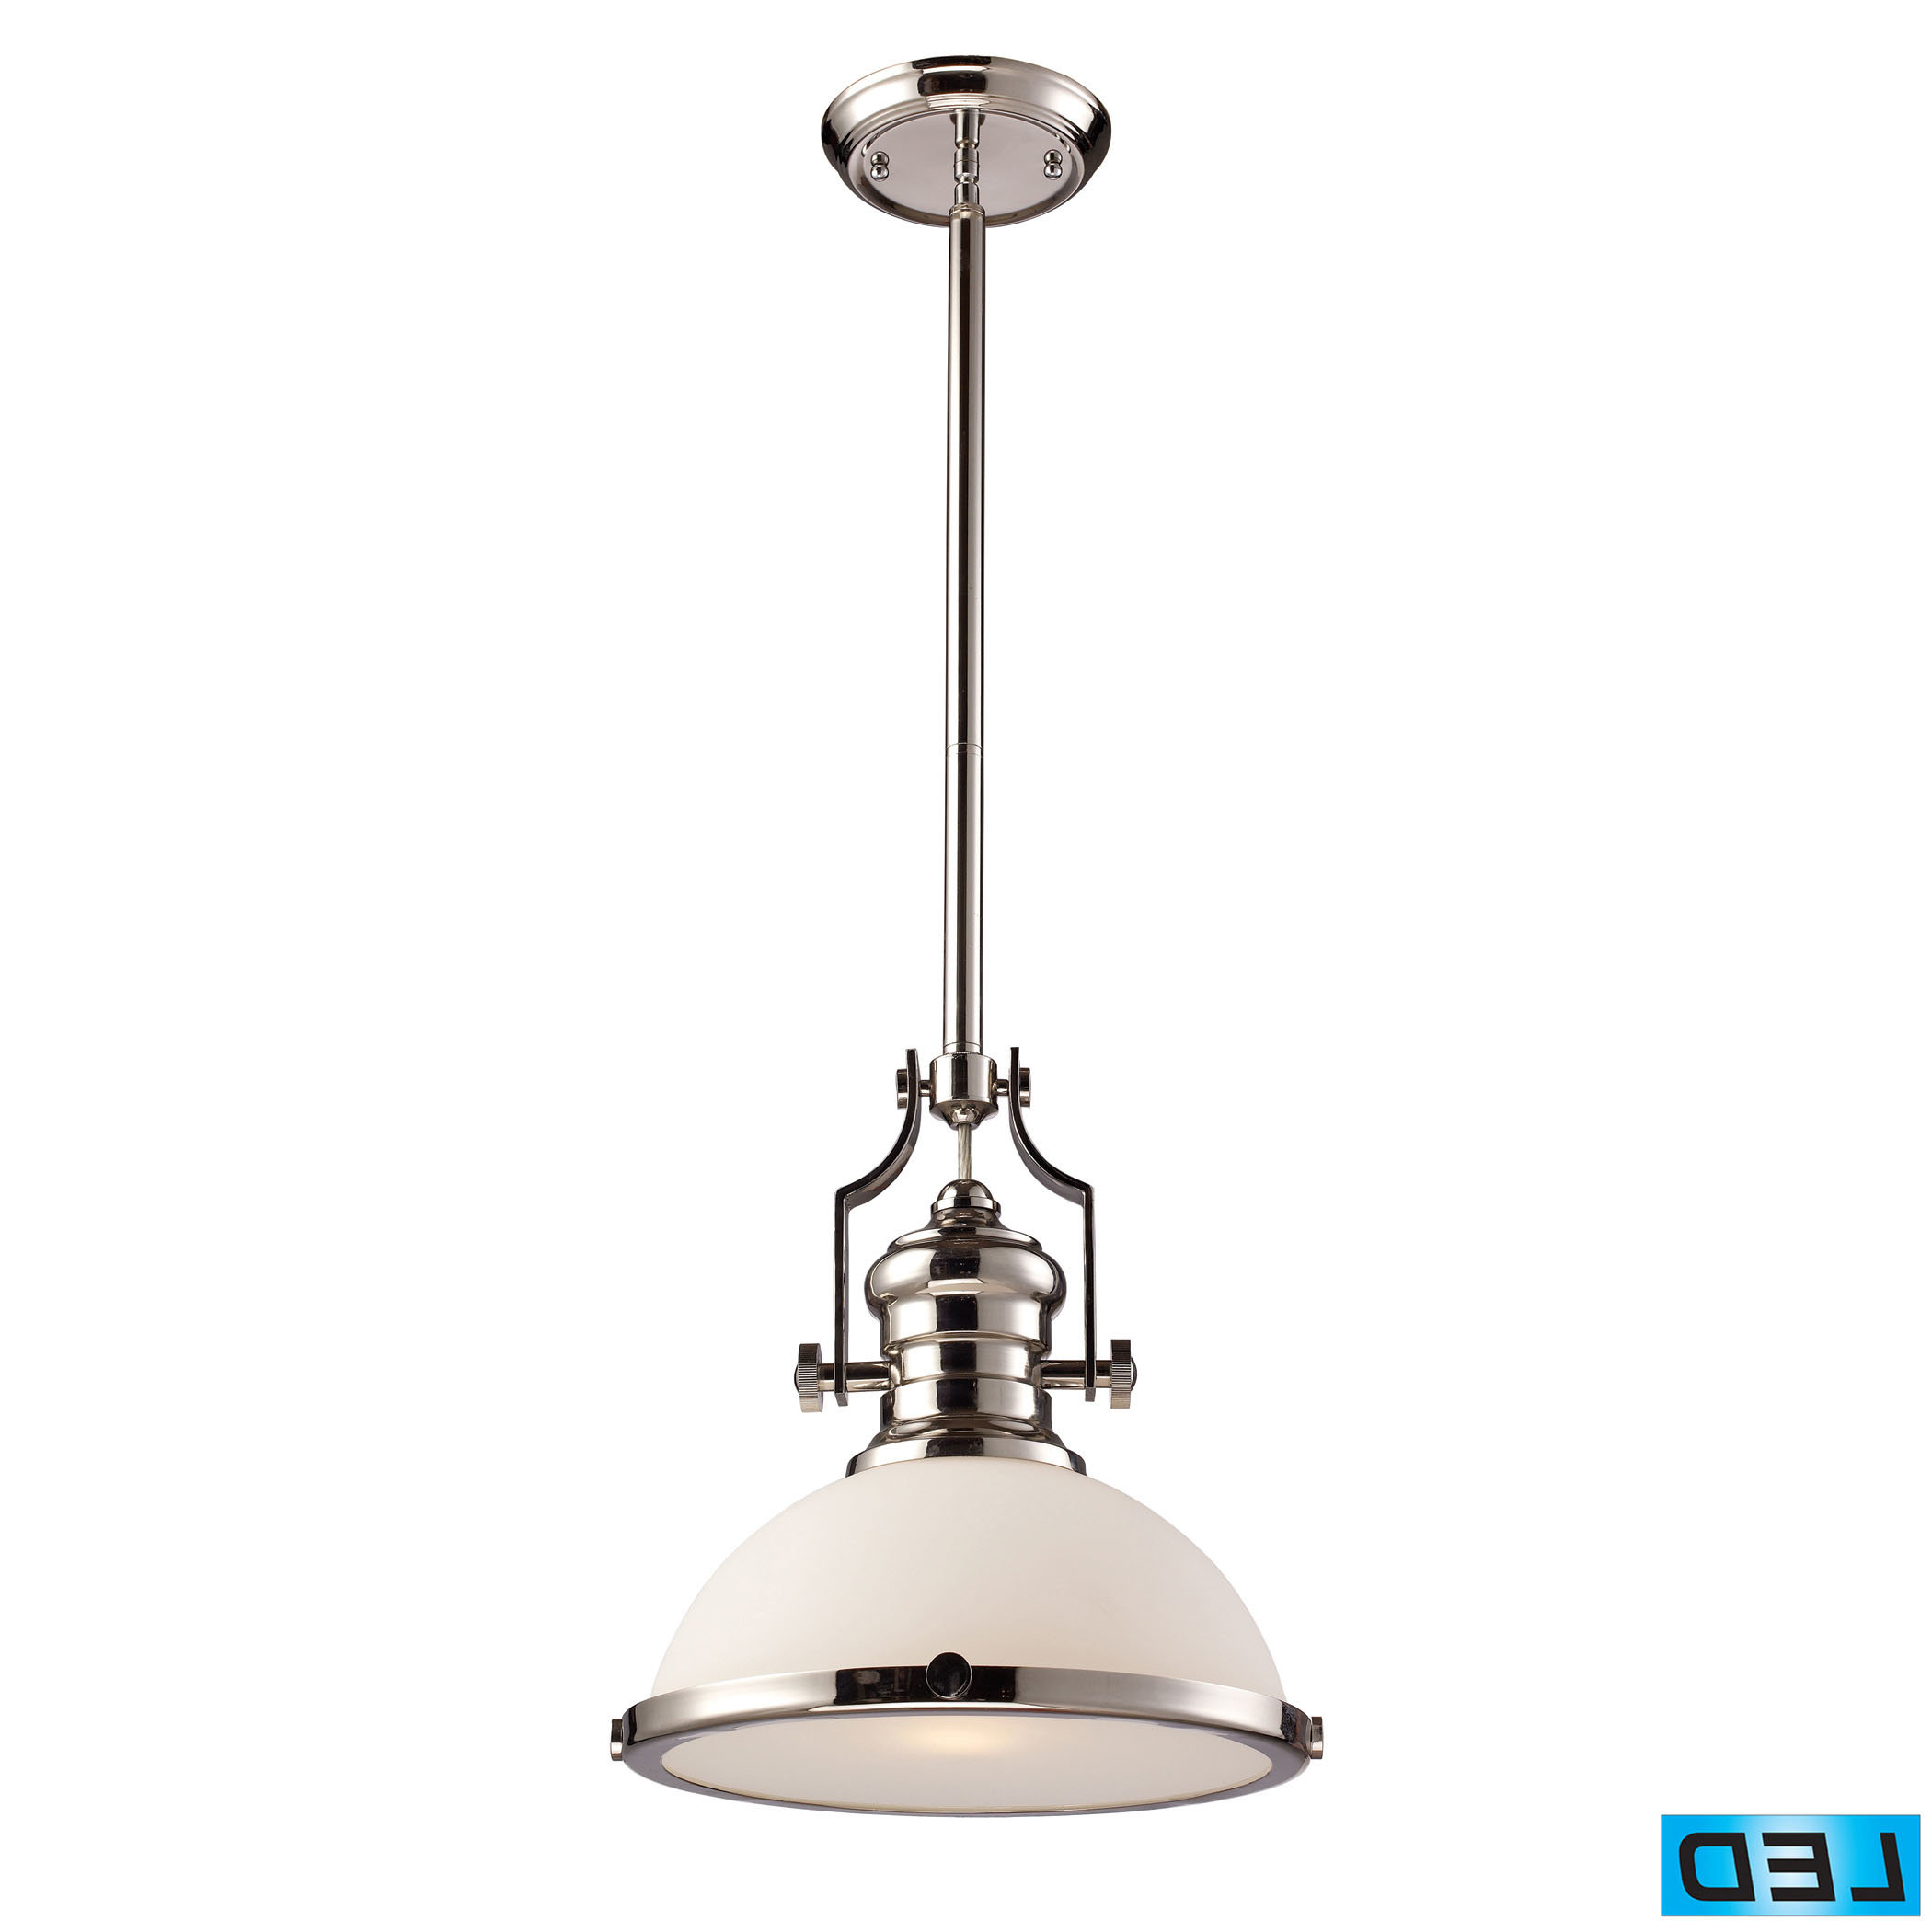 Priston 1 Light Single Dome Pendant For Well Liked Priston 1 Light Single Dome Pendants (Gallery 4 of 20)